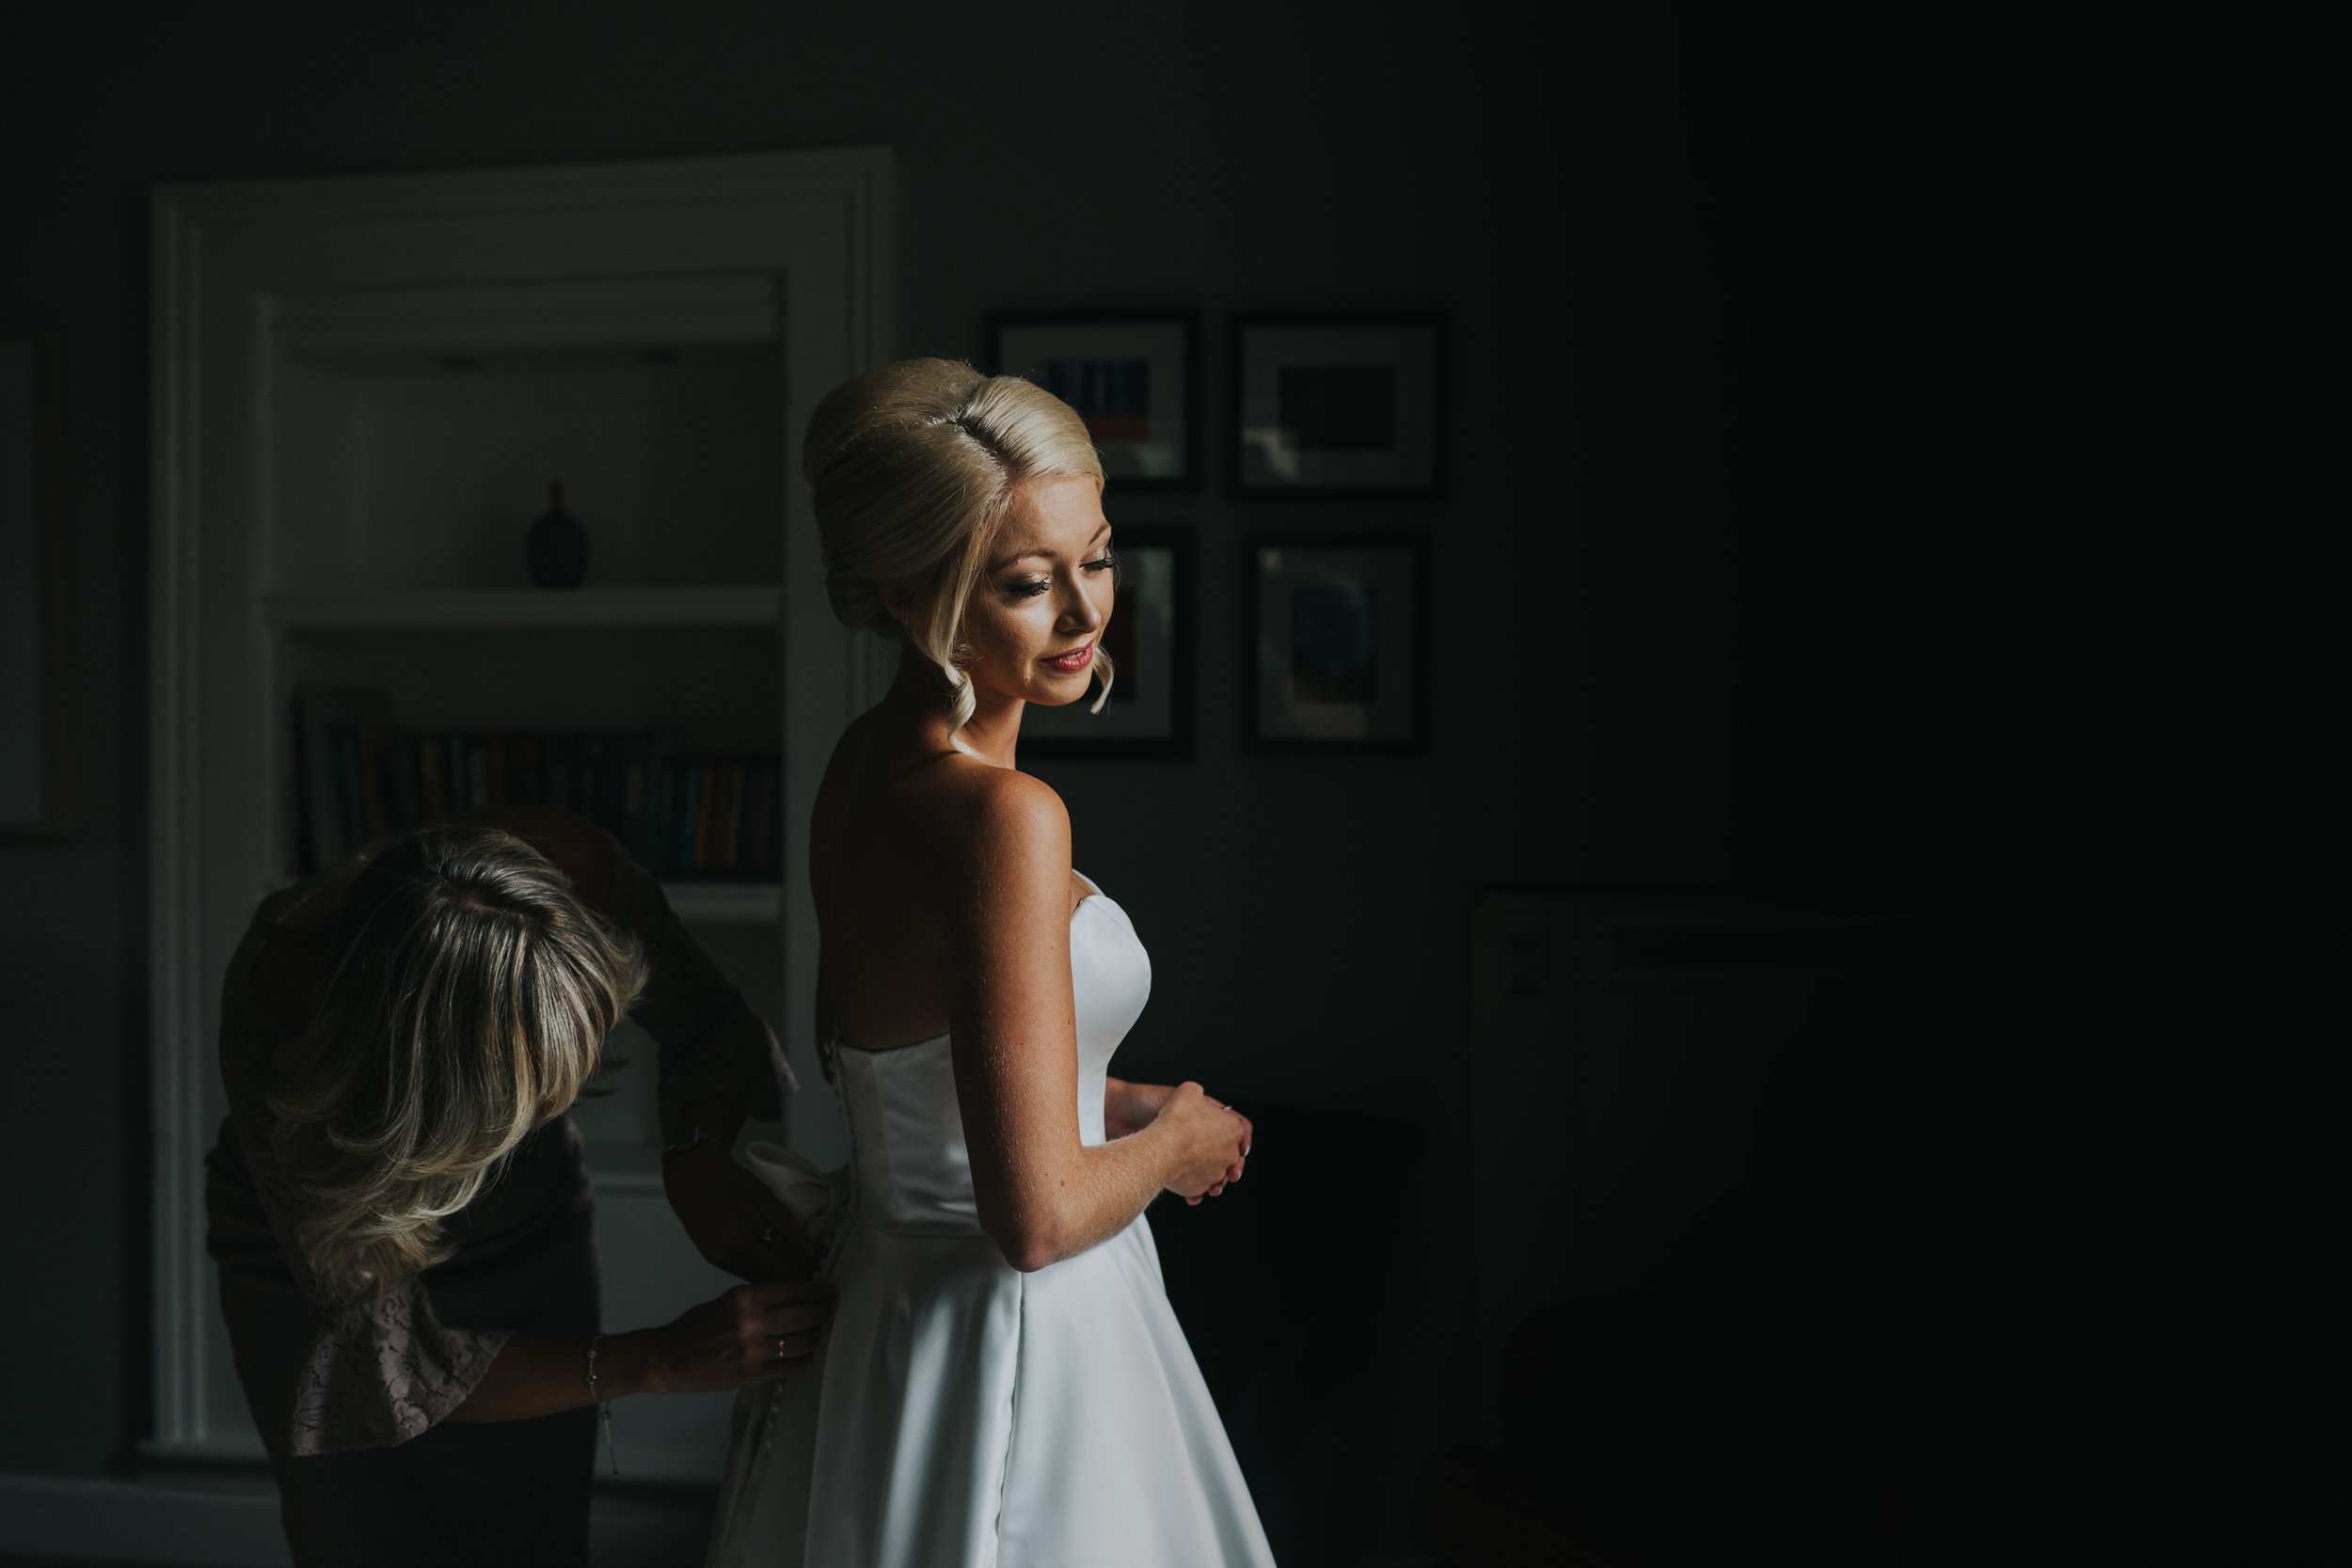 The bride stands in window light as her mother helps her put on her dress.